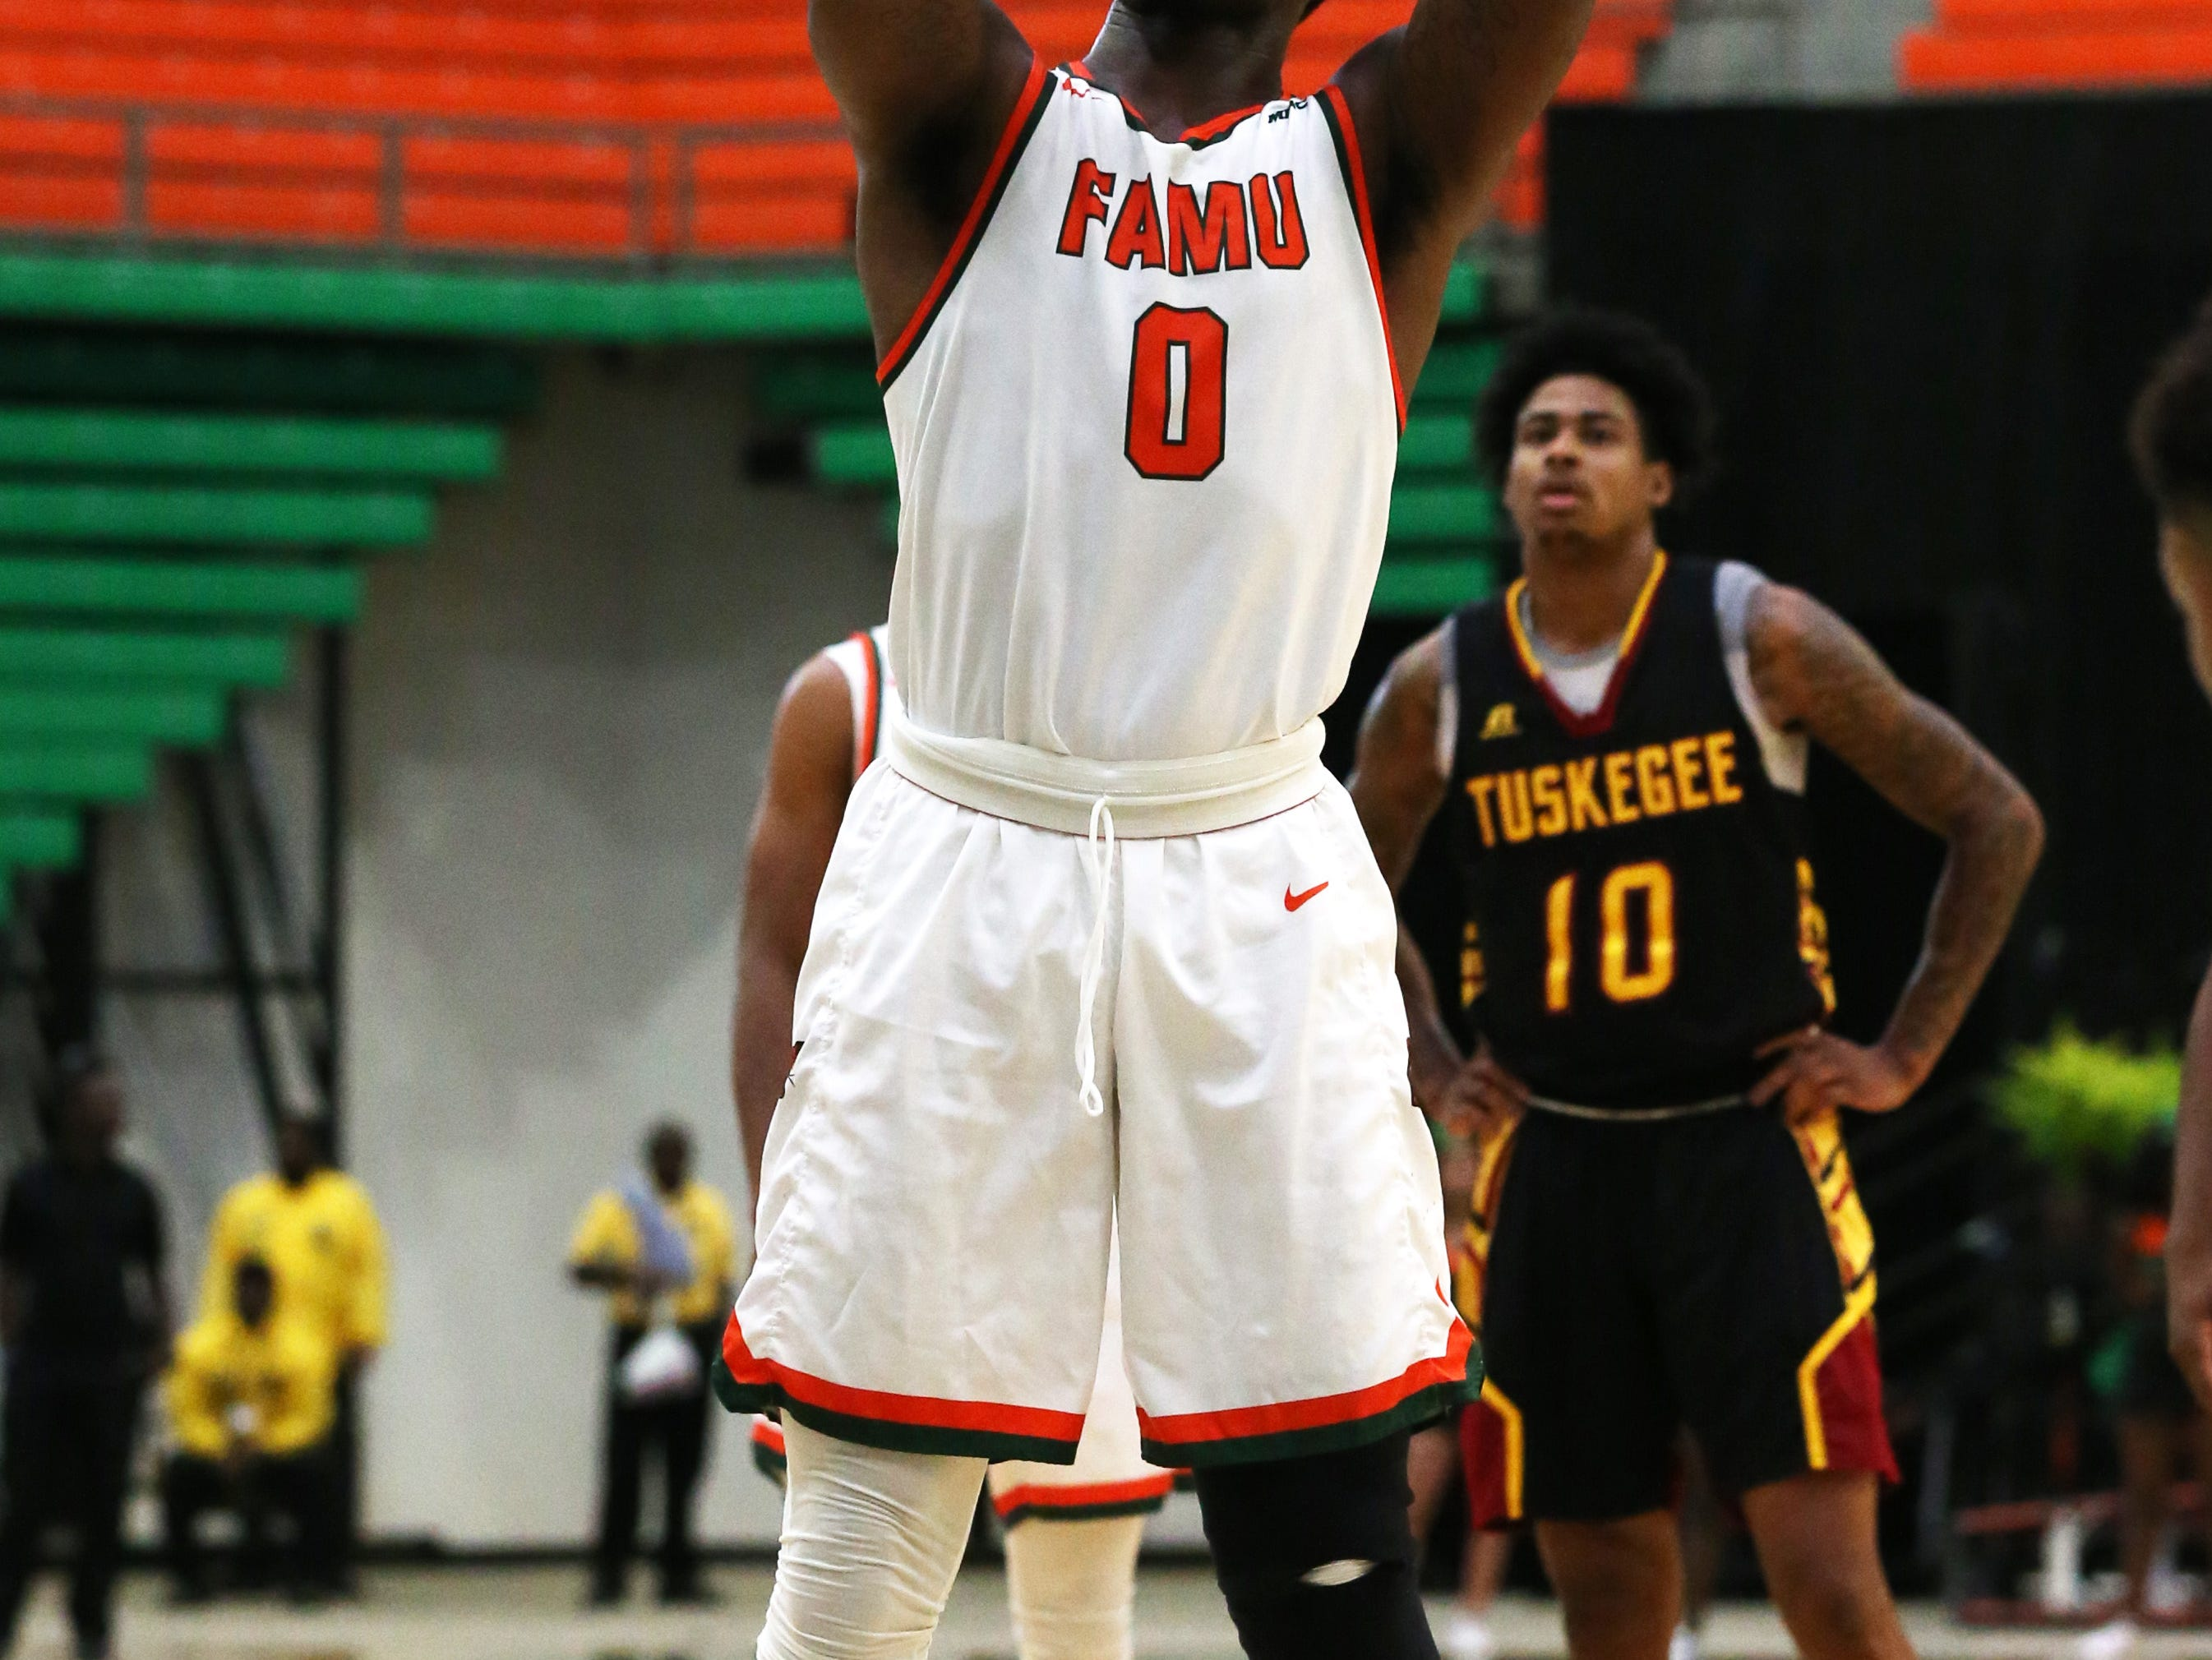 Florida A&M Rattlers forward Tracy Hector Jr. (0) shoots a free throw as the FAMU Rattlers take on the Tuskegee Golden Tigers in their first home game of the season in the Lawson Center, Saturday, Nov. 10, 2018.